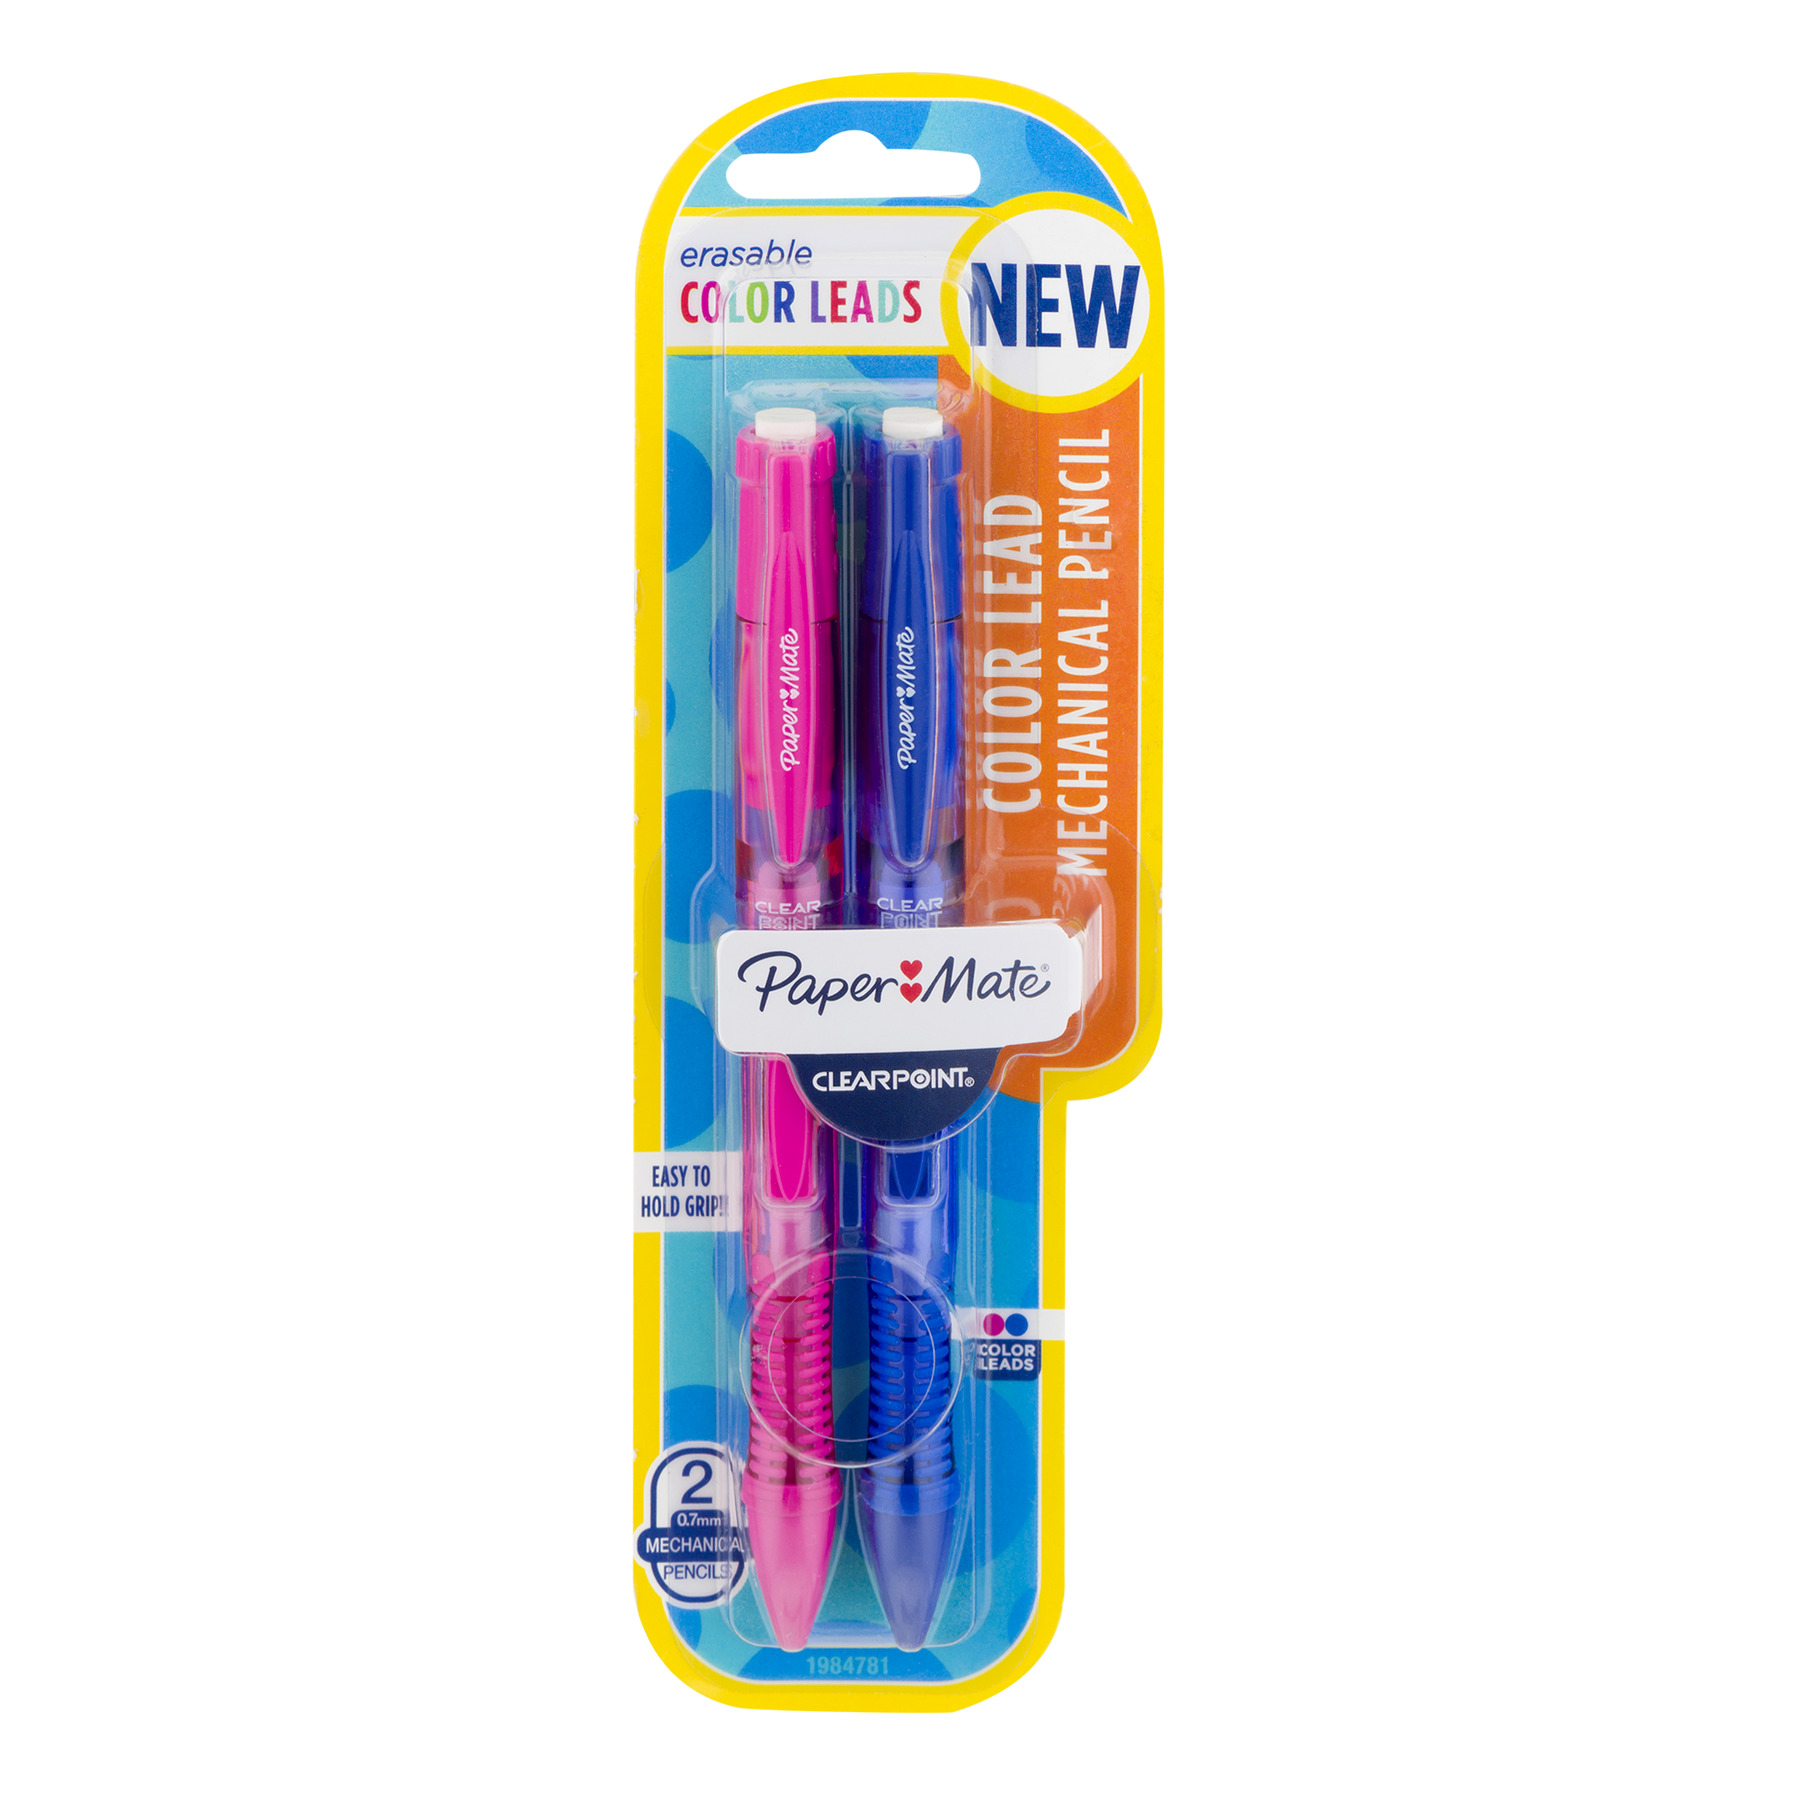 Paper Mate Color Lead Mechanical Pencil - 2 PK, 2.0 PACK